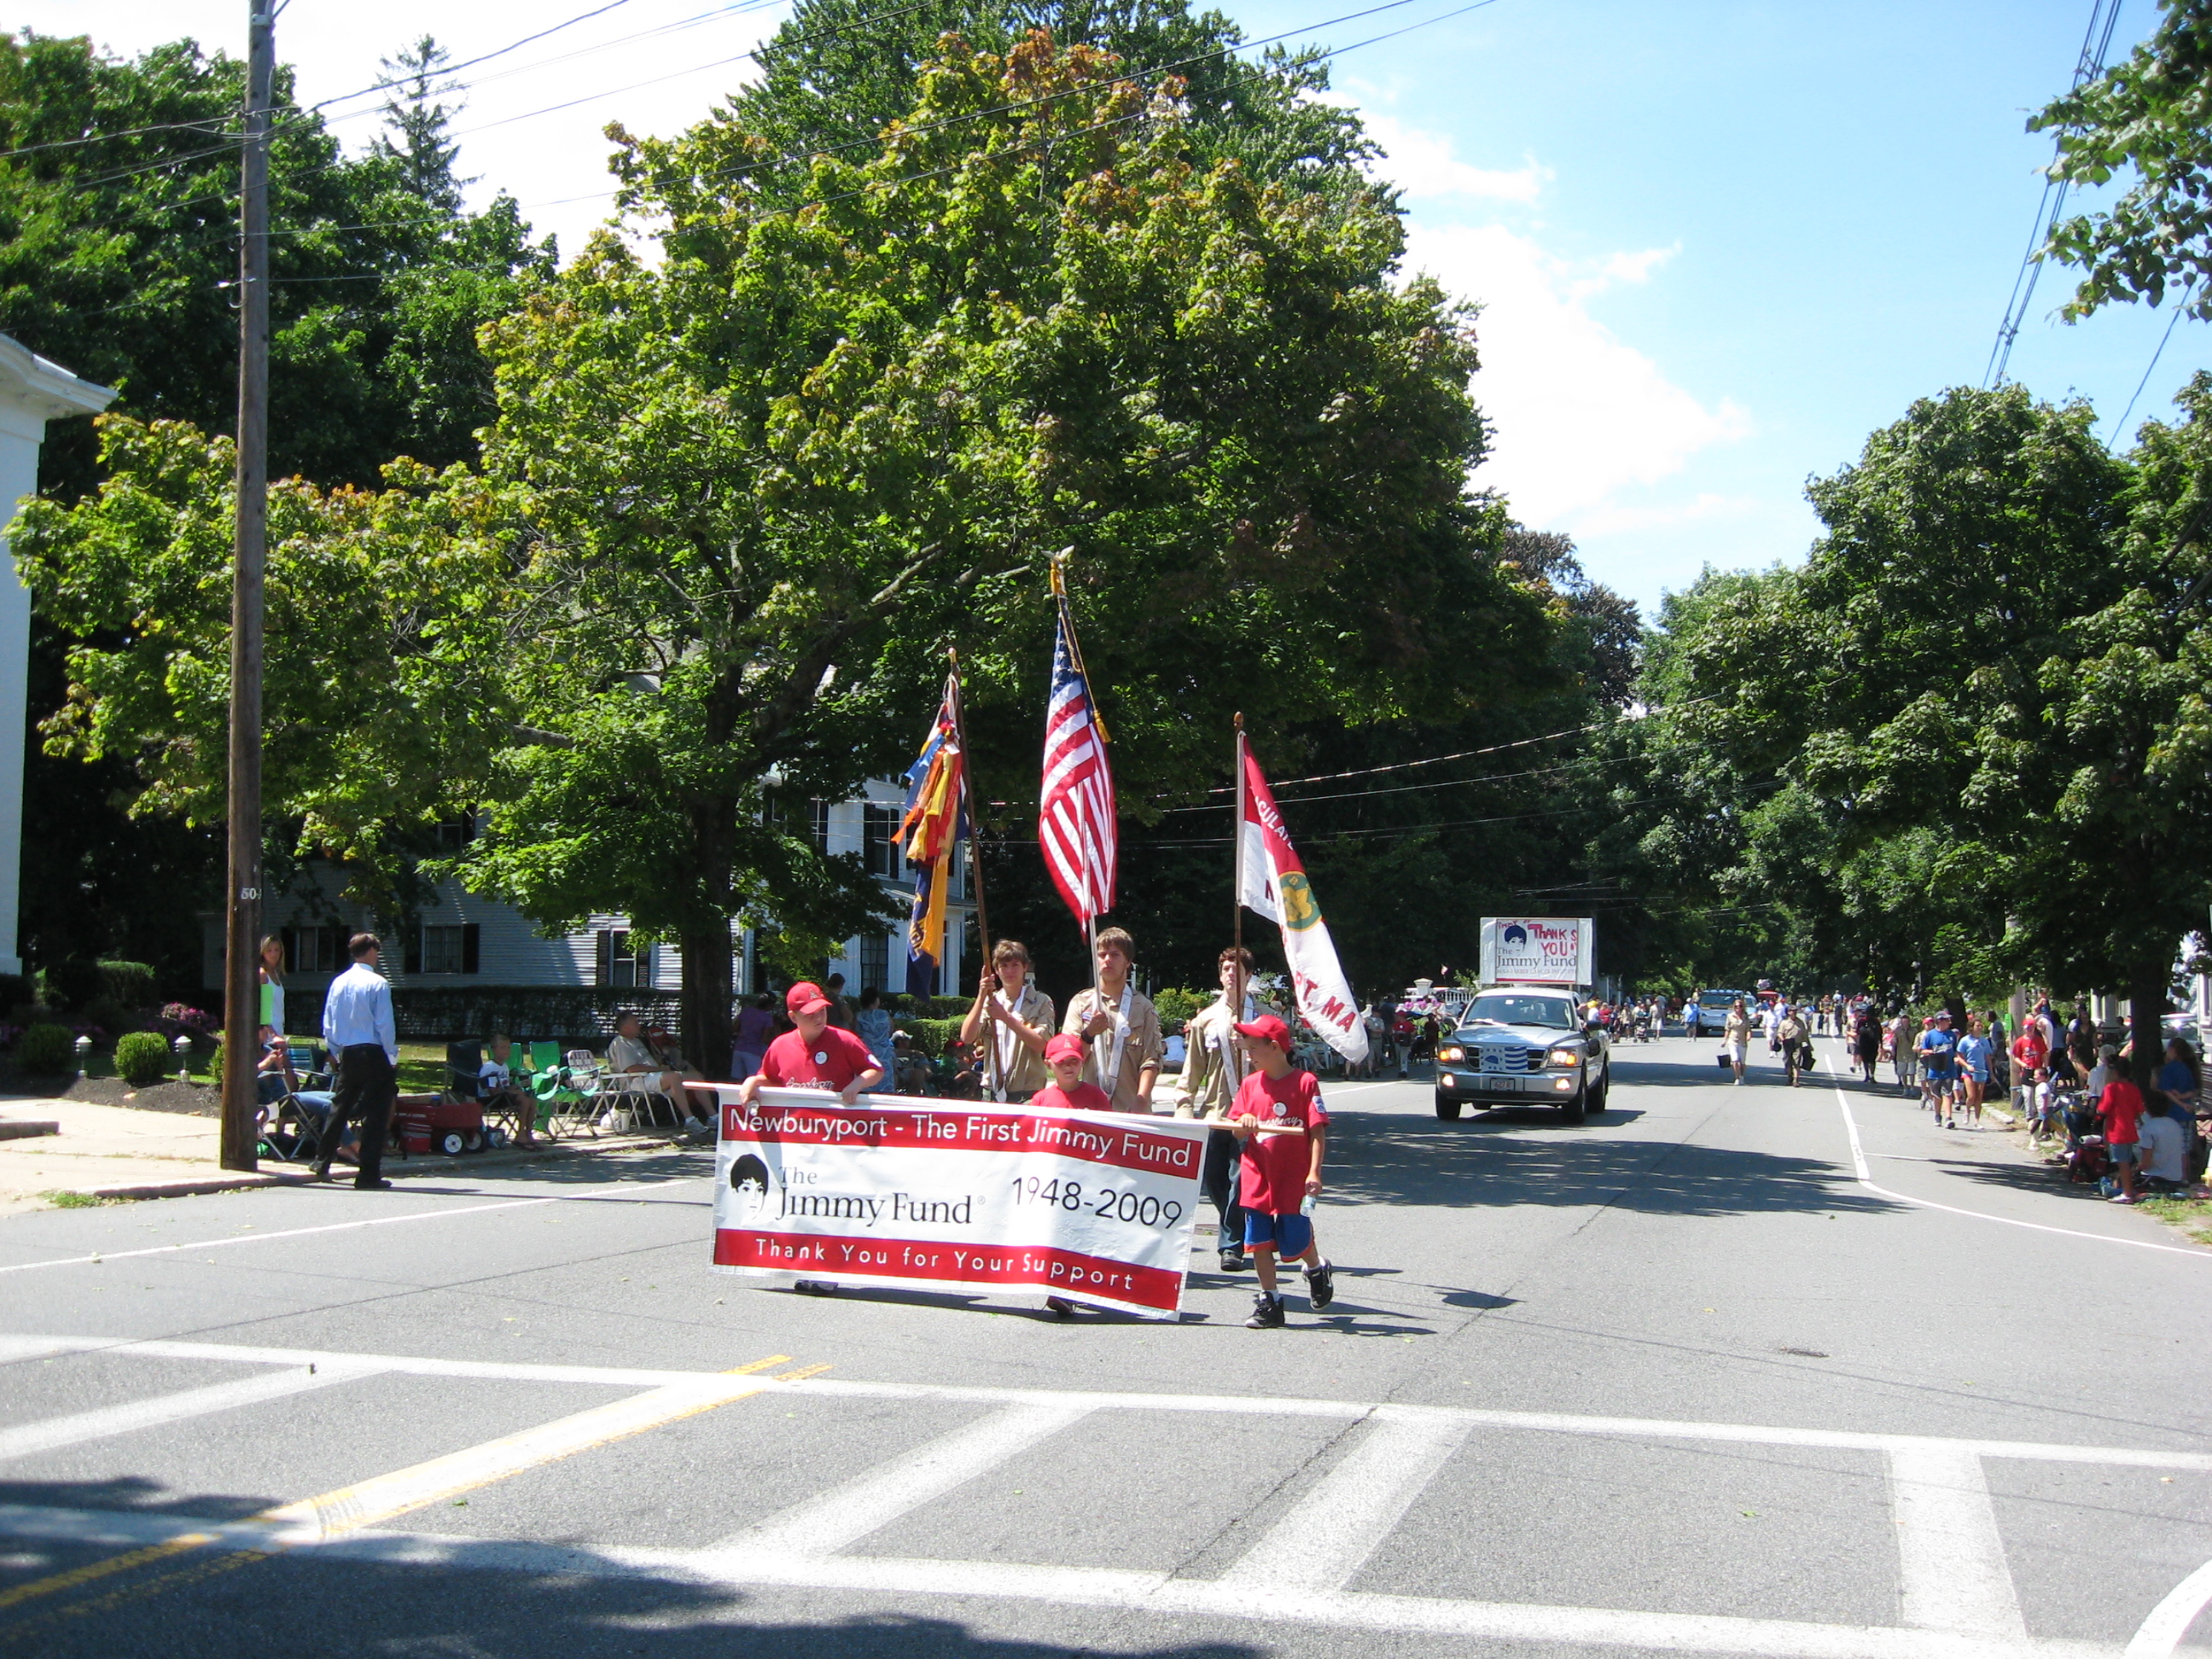 NBPT Parade - Jimmie Fund